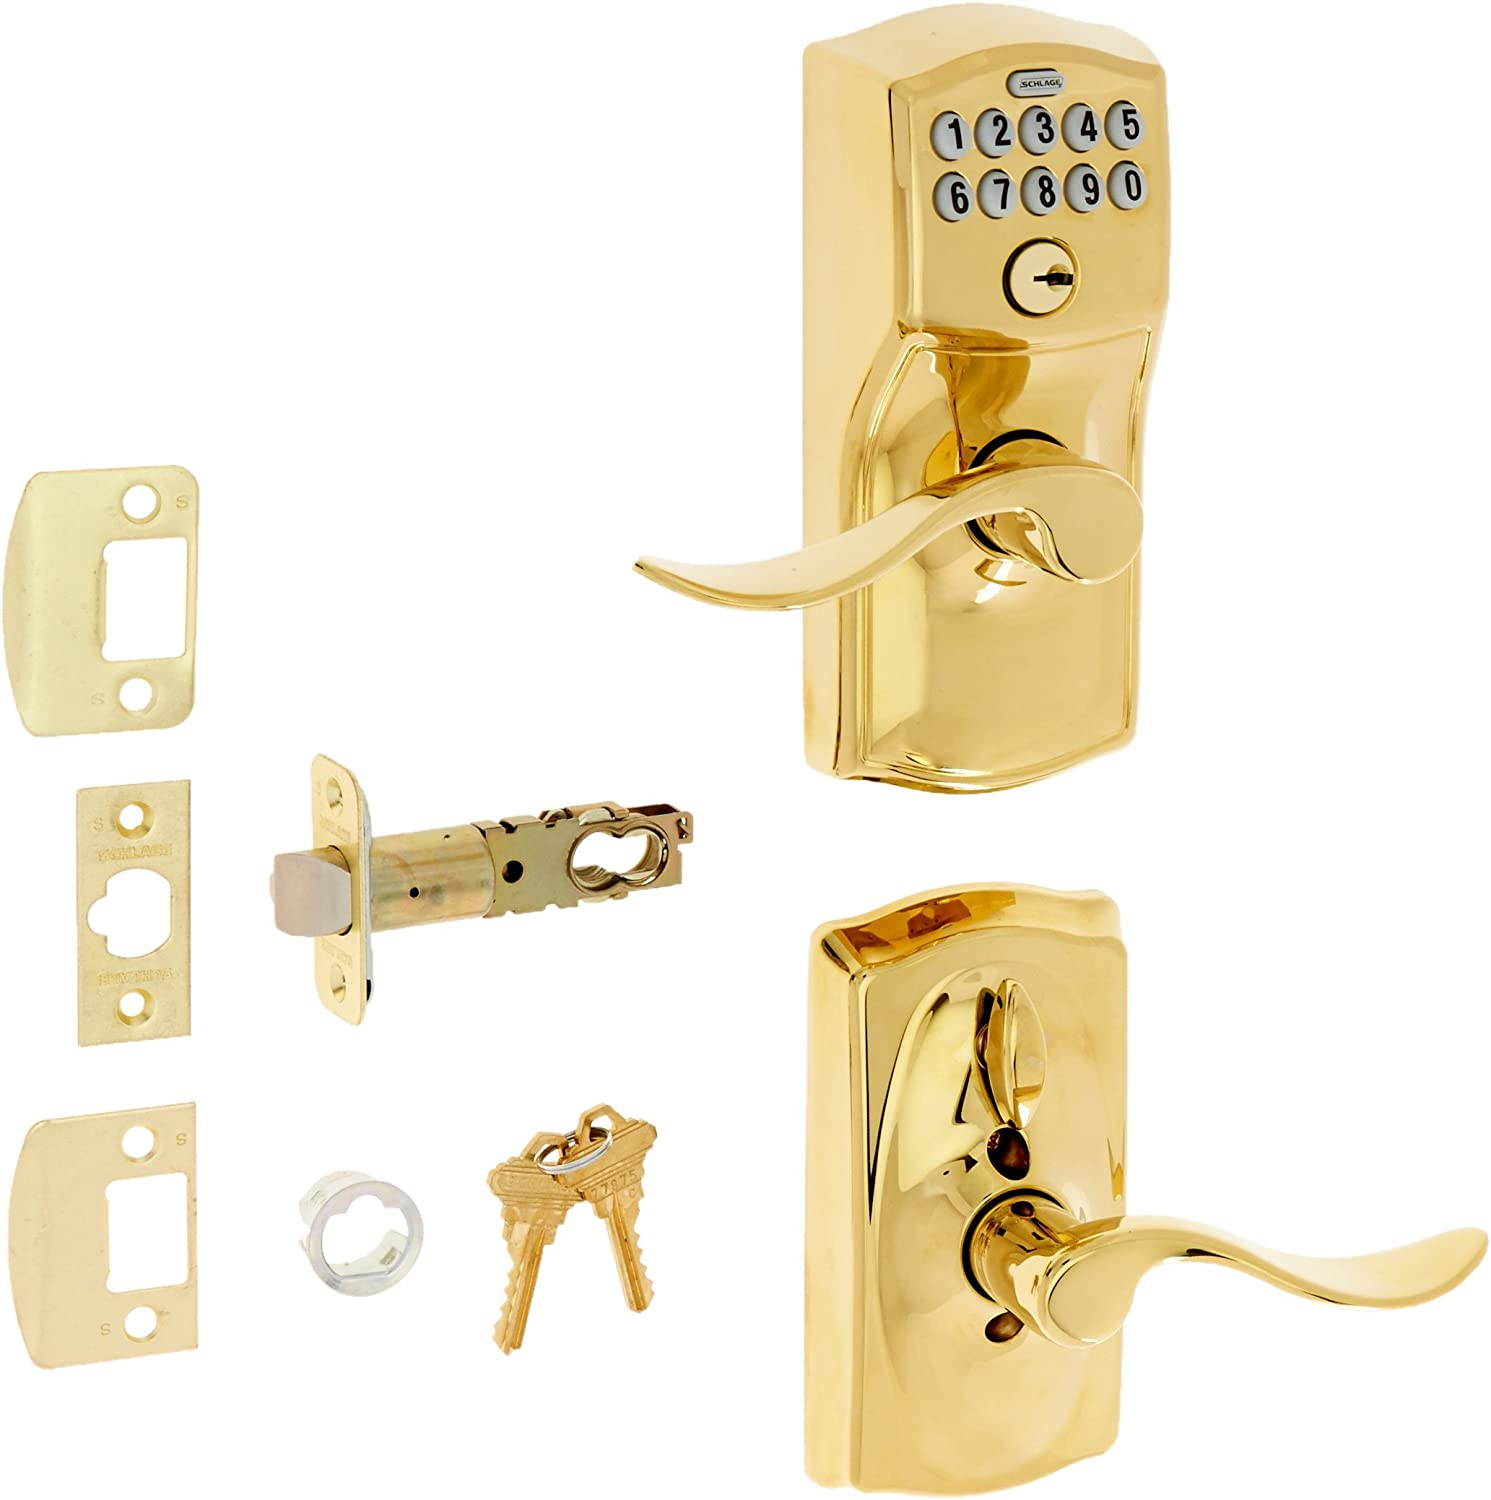 Schlage FE595 CAM 505 16-234 10-027 Camelot by Accent Keypad Lever with Flex Lock, Bright Brass